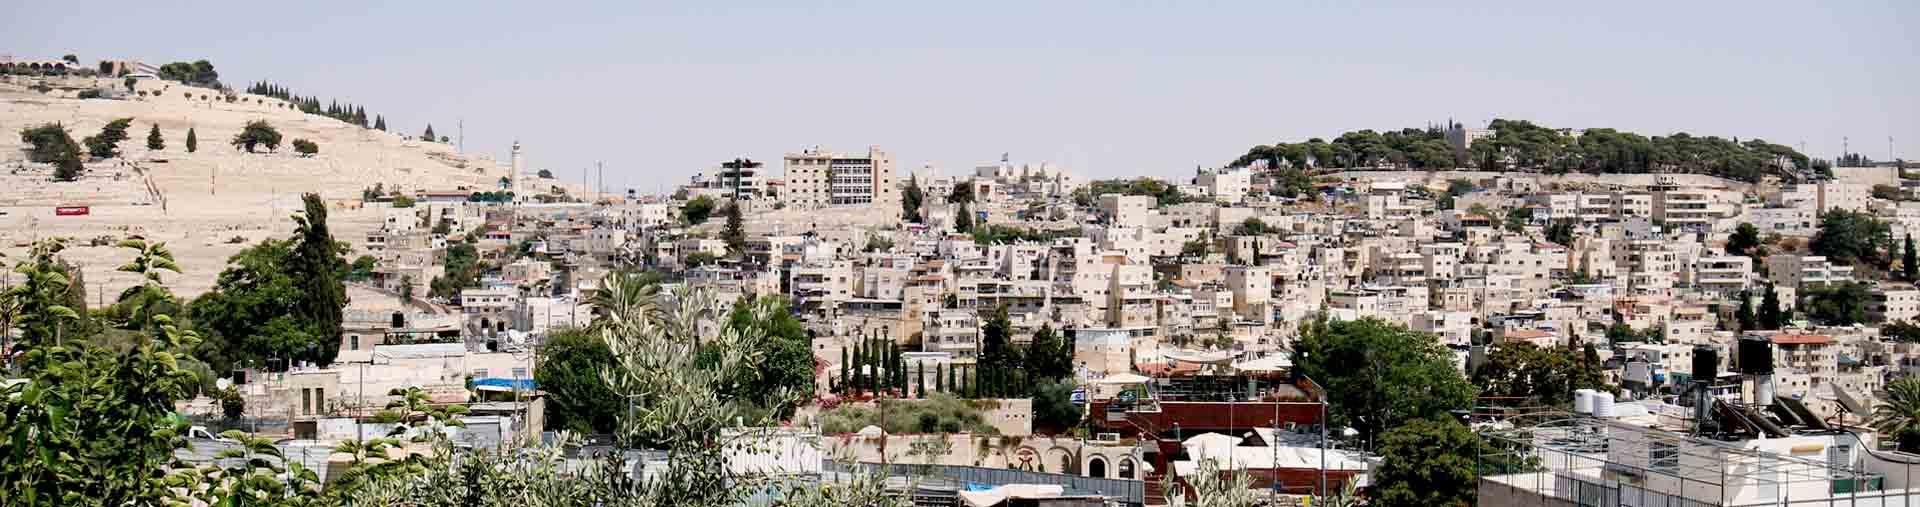 jerusalem City of David